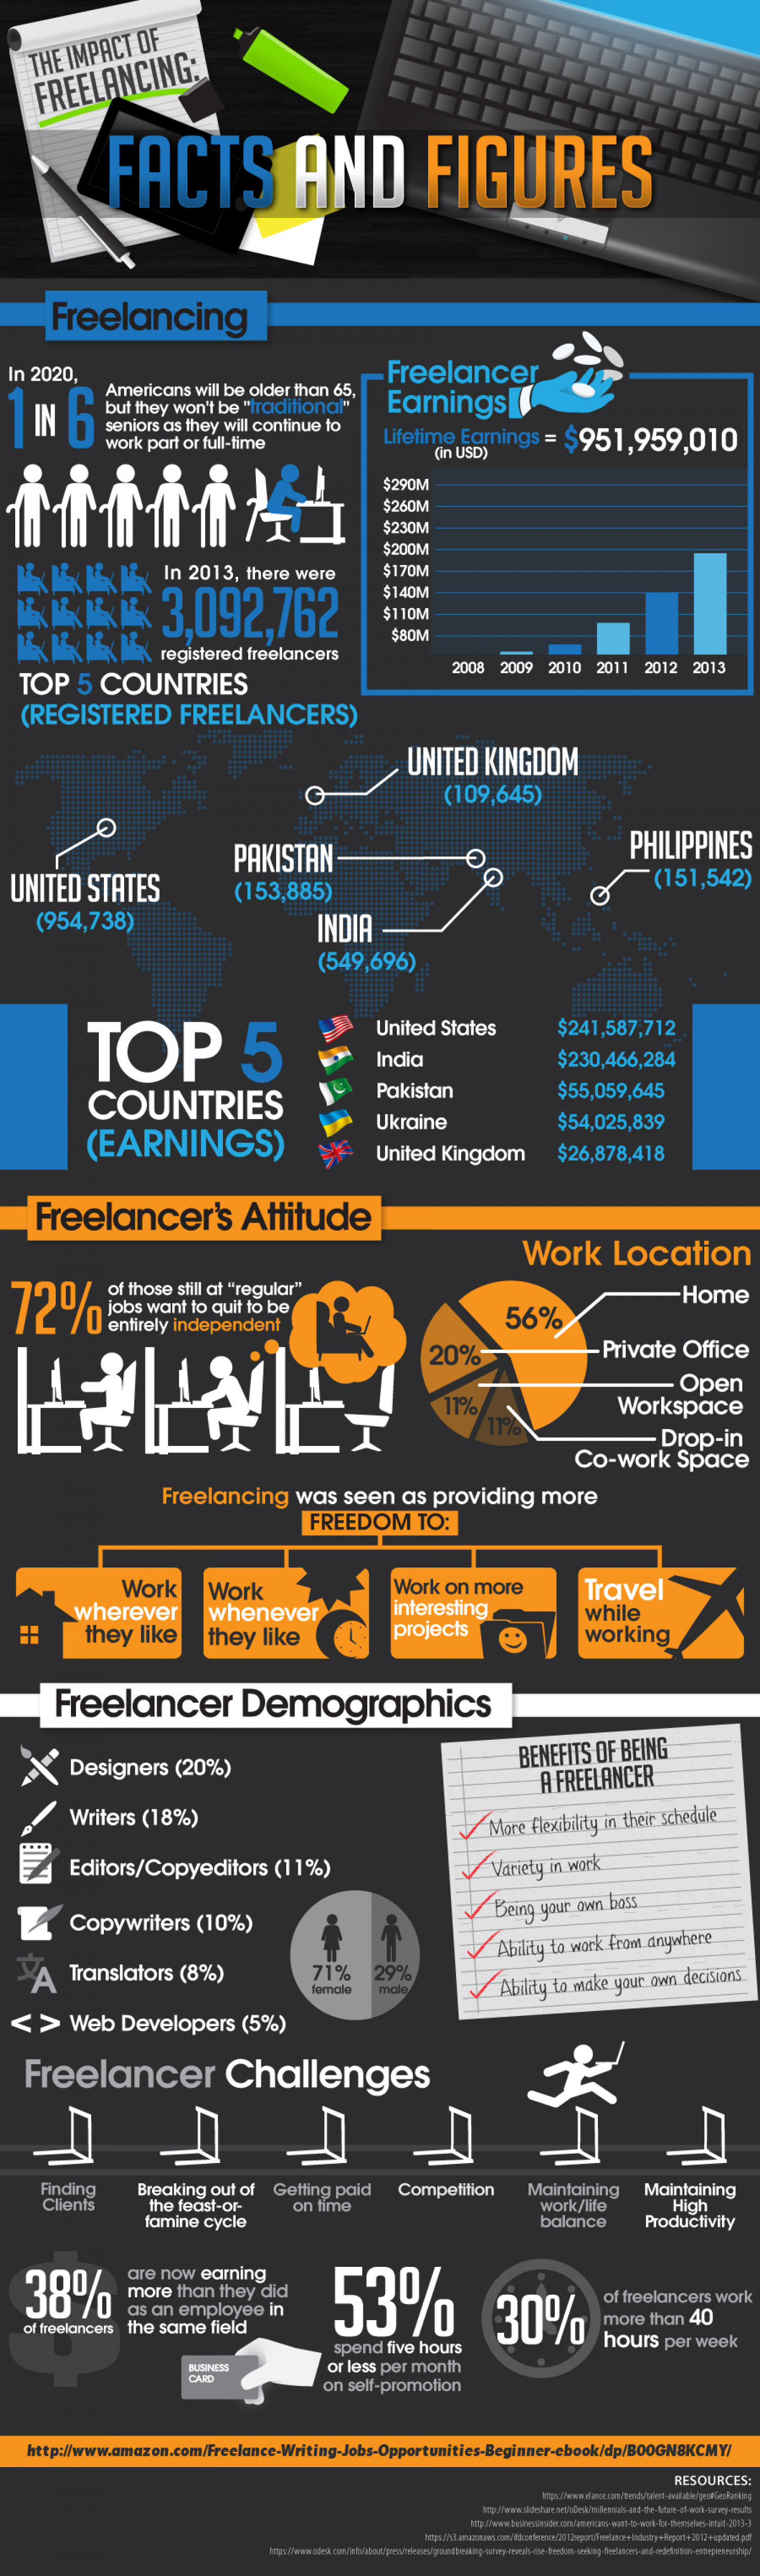 The Impact of Freelancing: Facts and Figures Infographic